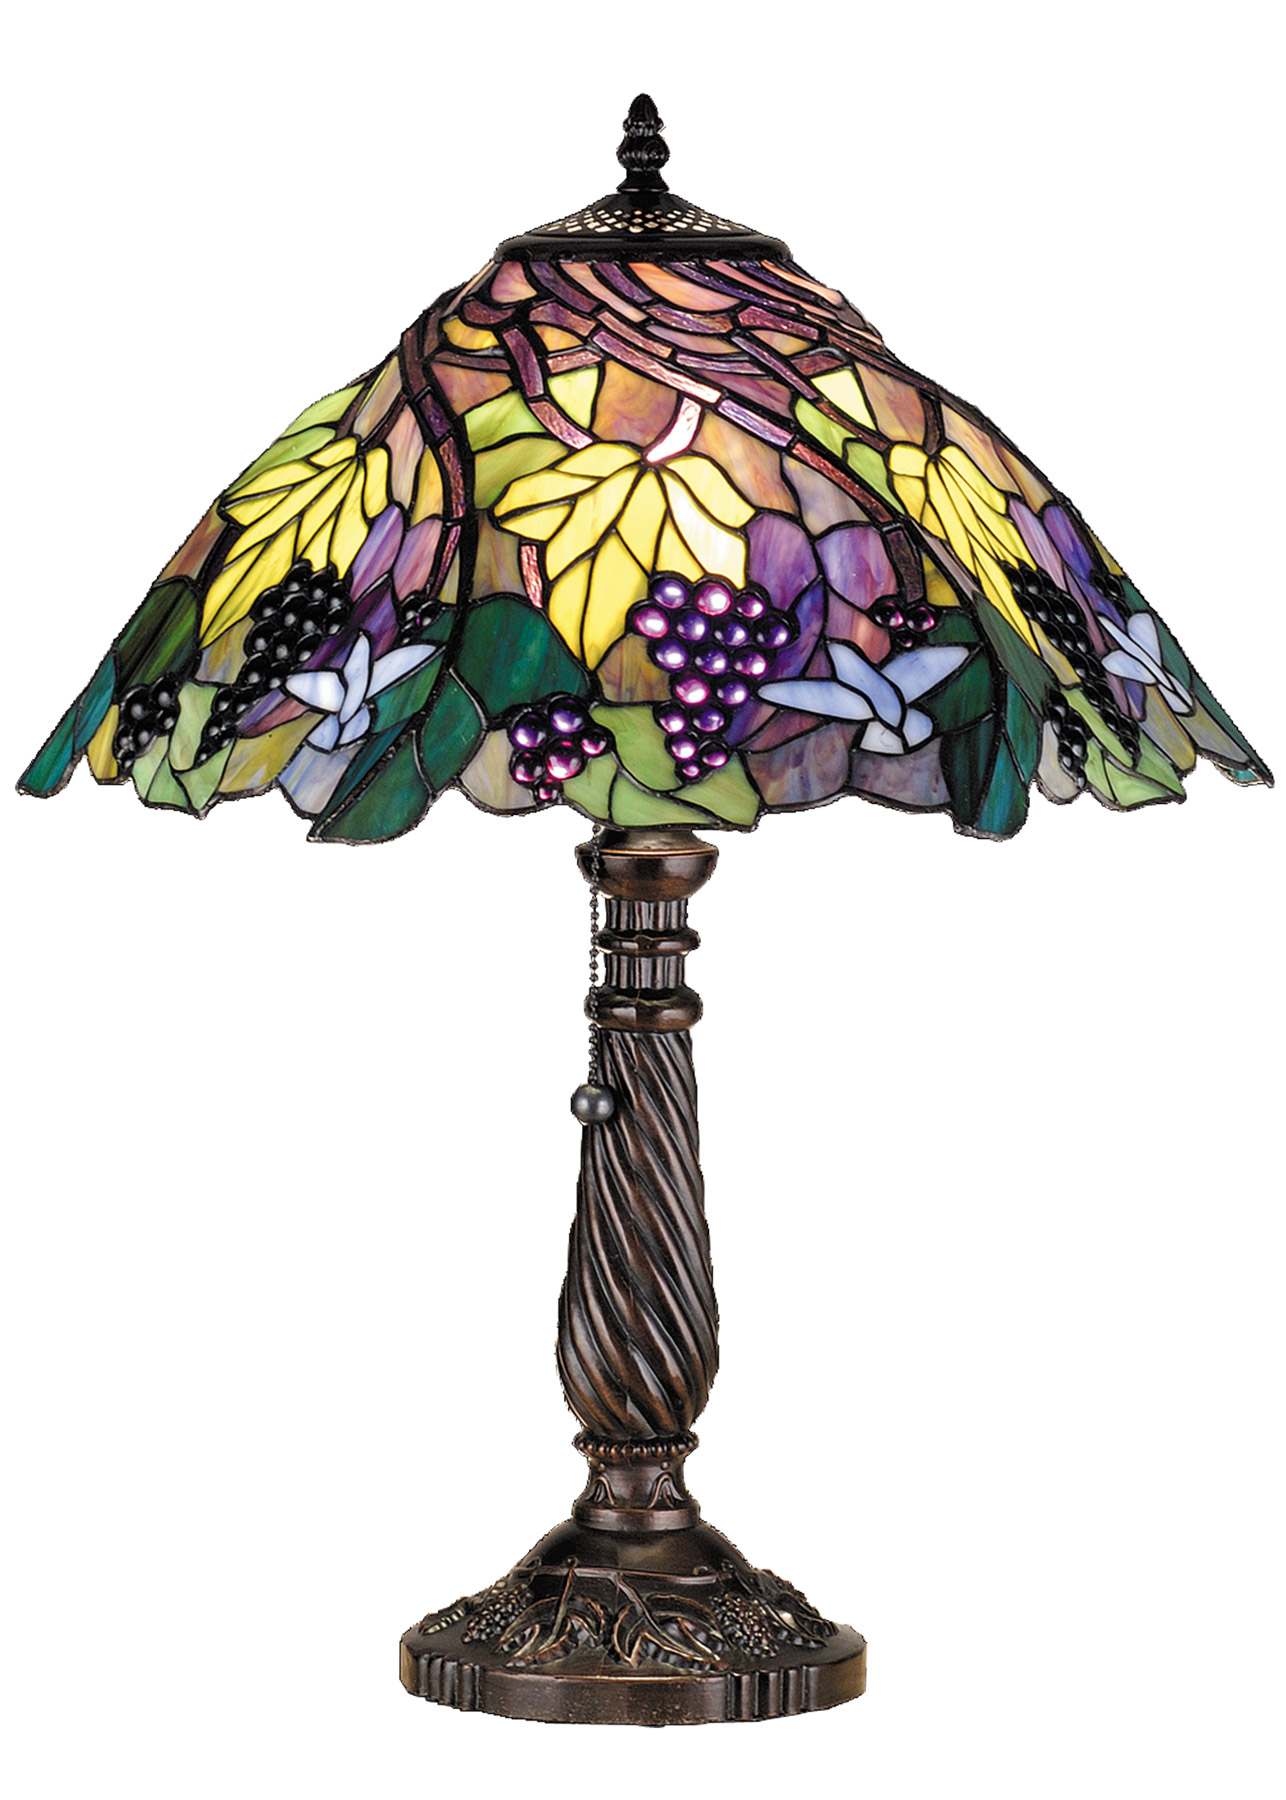 home lamps table lamps standard table lamps meyda 82303. Black Bedroom Furniture Sets. Home Design Ideas